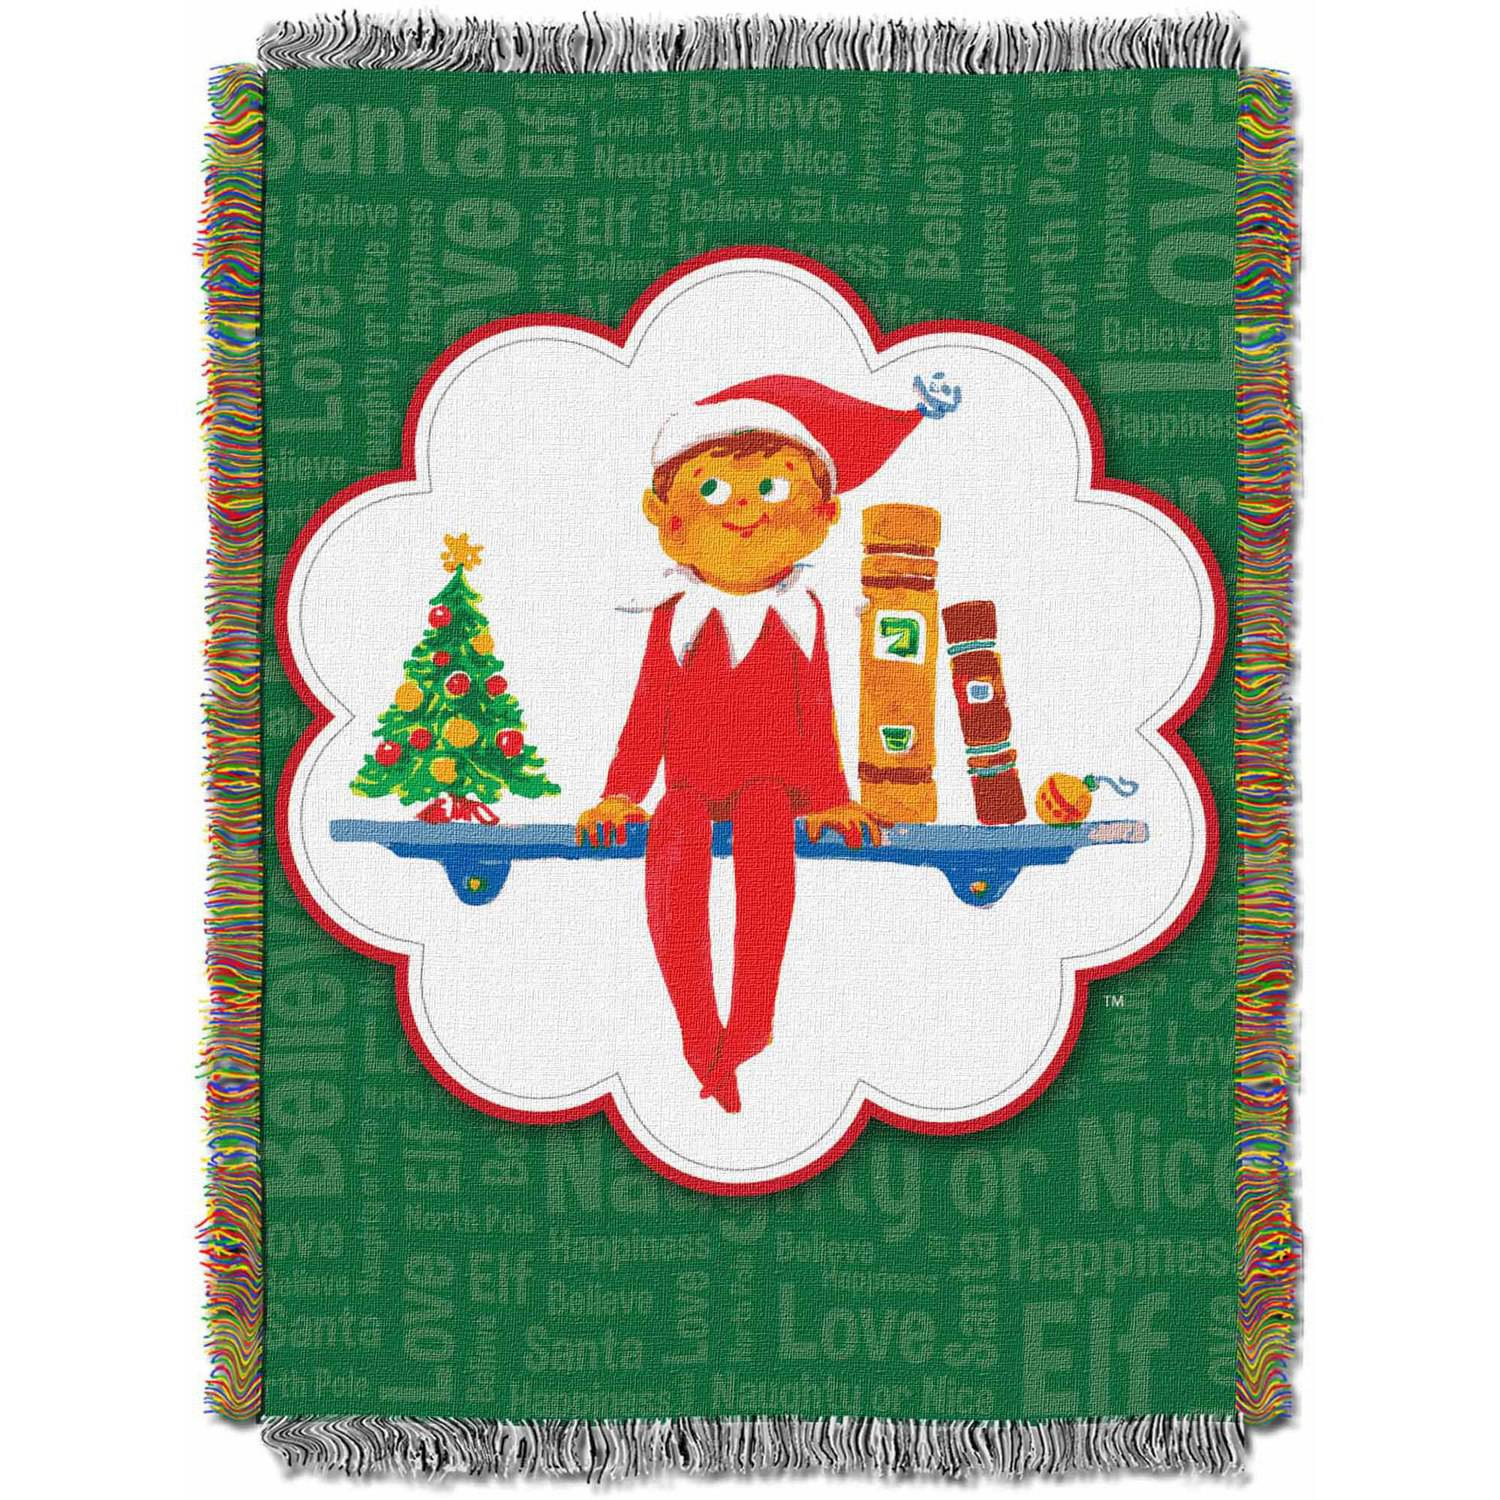 "The Elf on the Shelf ""Christmas Tradition"" 48"" x 60"" Woven Tapestry Throw"